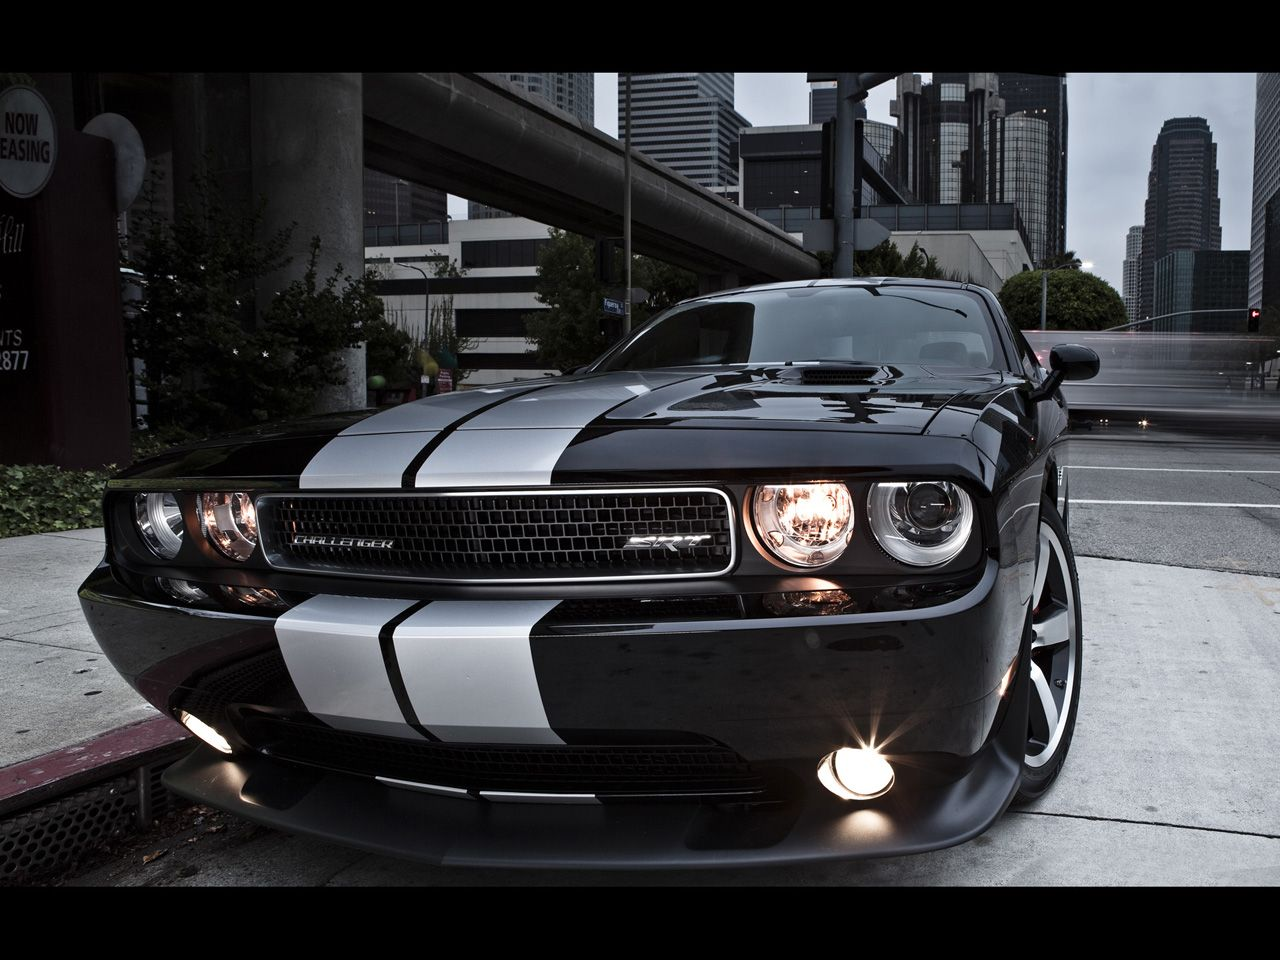 2012 dodge challenger 392 my absolute dream car got to drive the model the other day and i gotta say for a car that heavy you really don t feel it